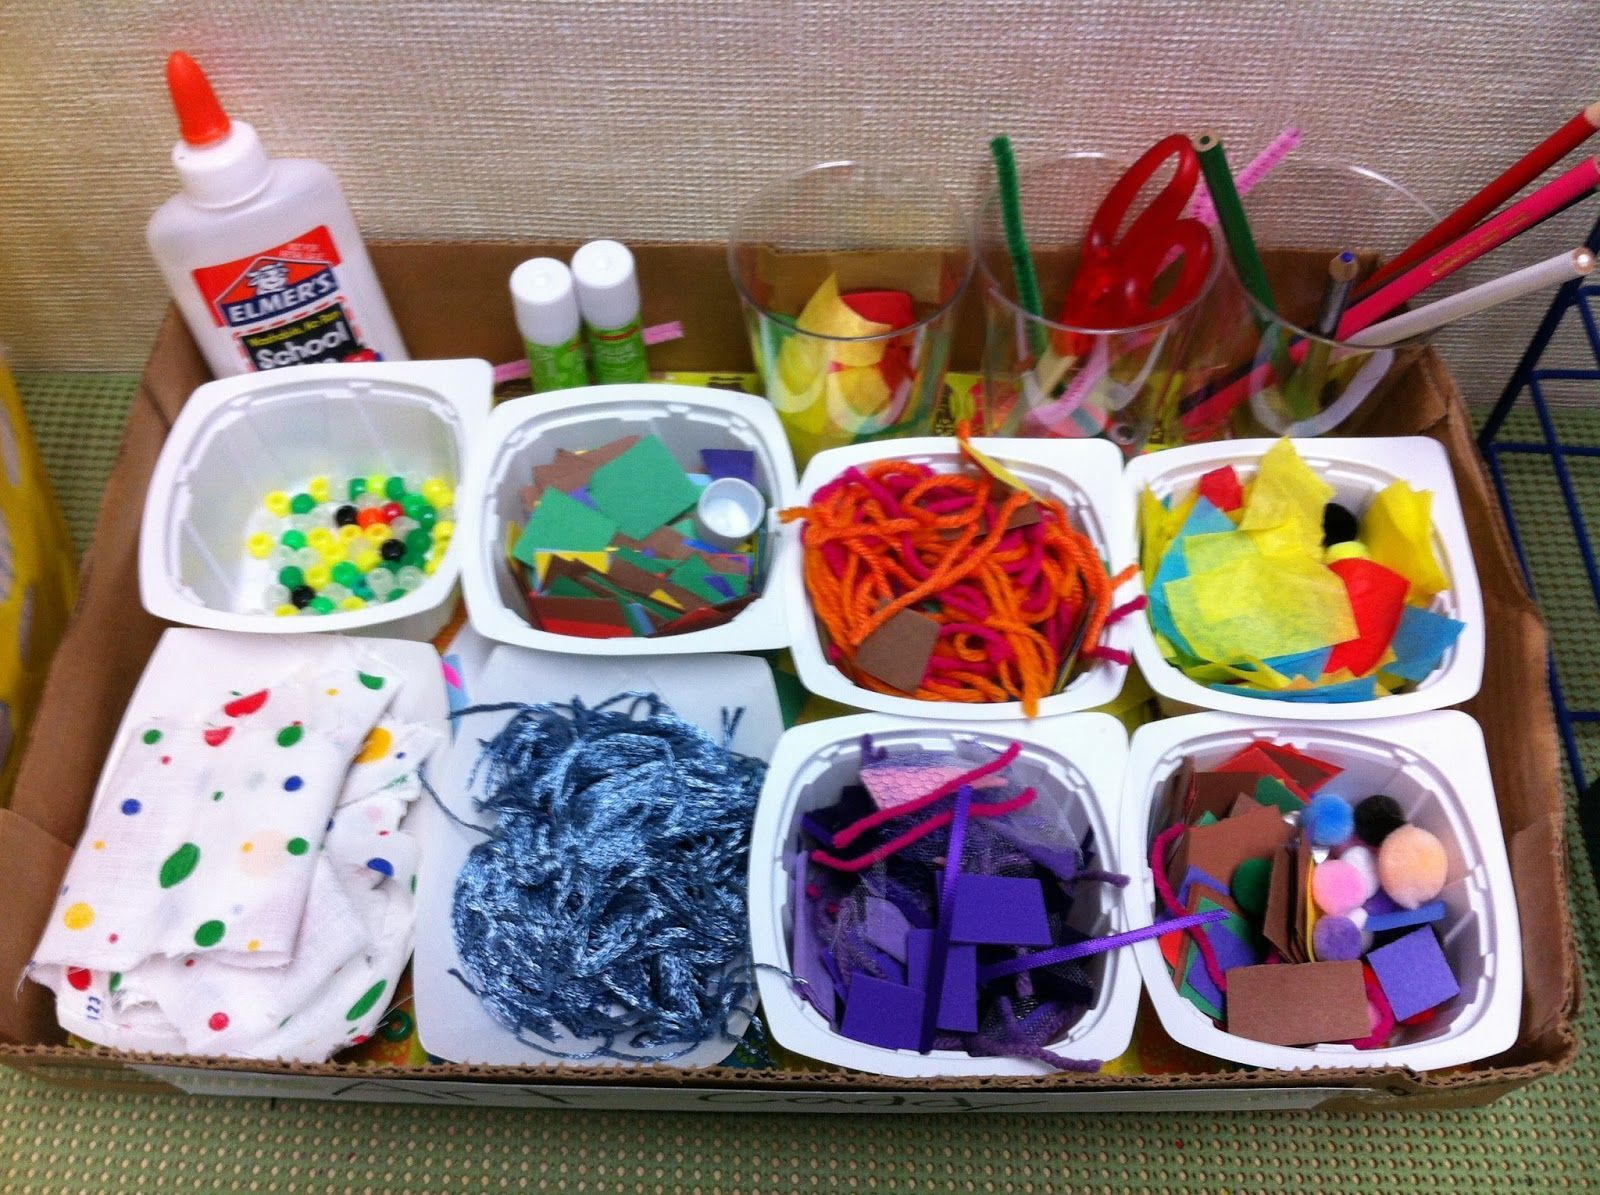 HELLO ALL. Welcome to the new school year!! Last year I did a post on my preschool classroom set up!! I have been overwhelmed with an ama... #preschoolclassroomsetup HELLO ALL. Welcome to the new school year!! Last year I did a post on my preschool classroom set up!! I have been overwhelmed with an ama... #preschoolclassroomsetup